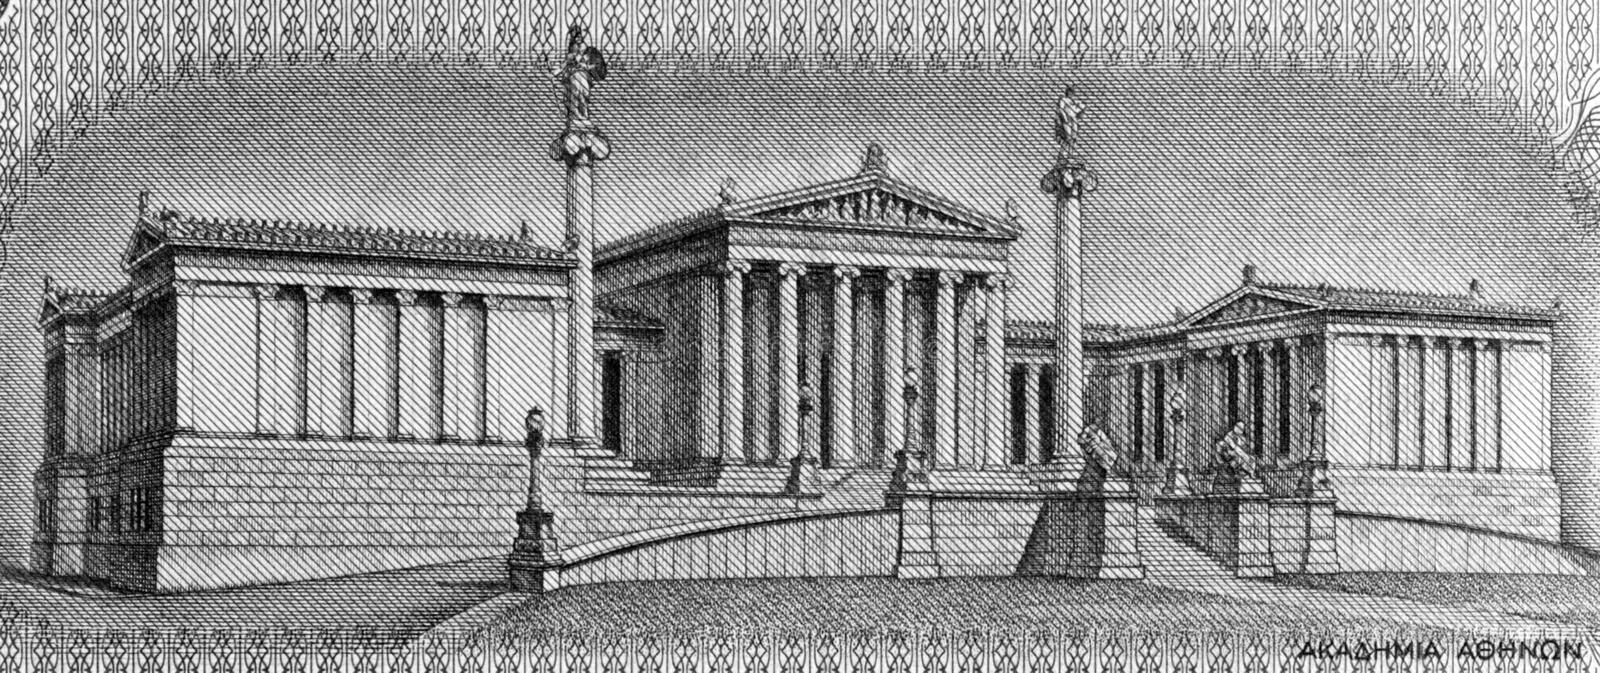 Academy of Athens. On 100 Drachmai 1967 banknote from Greece. It is the national academy of Greece, and the highest research establishment in the country. The royalty free stock images